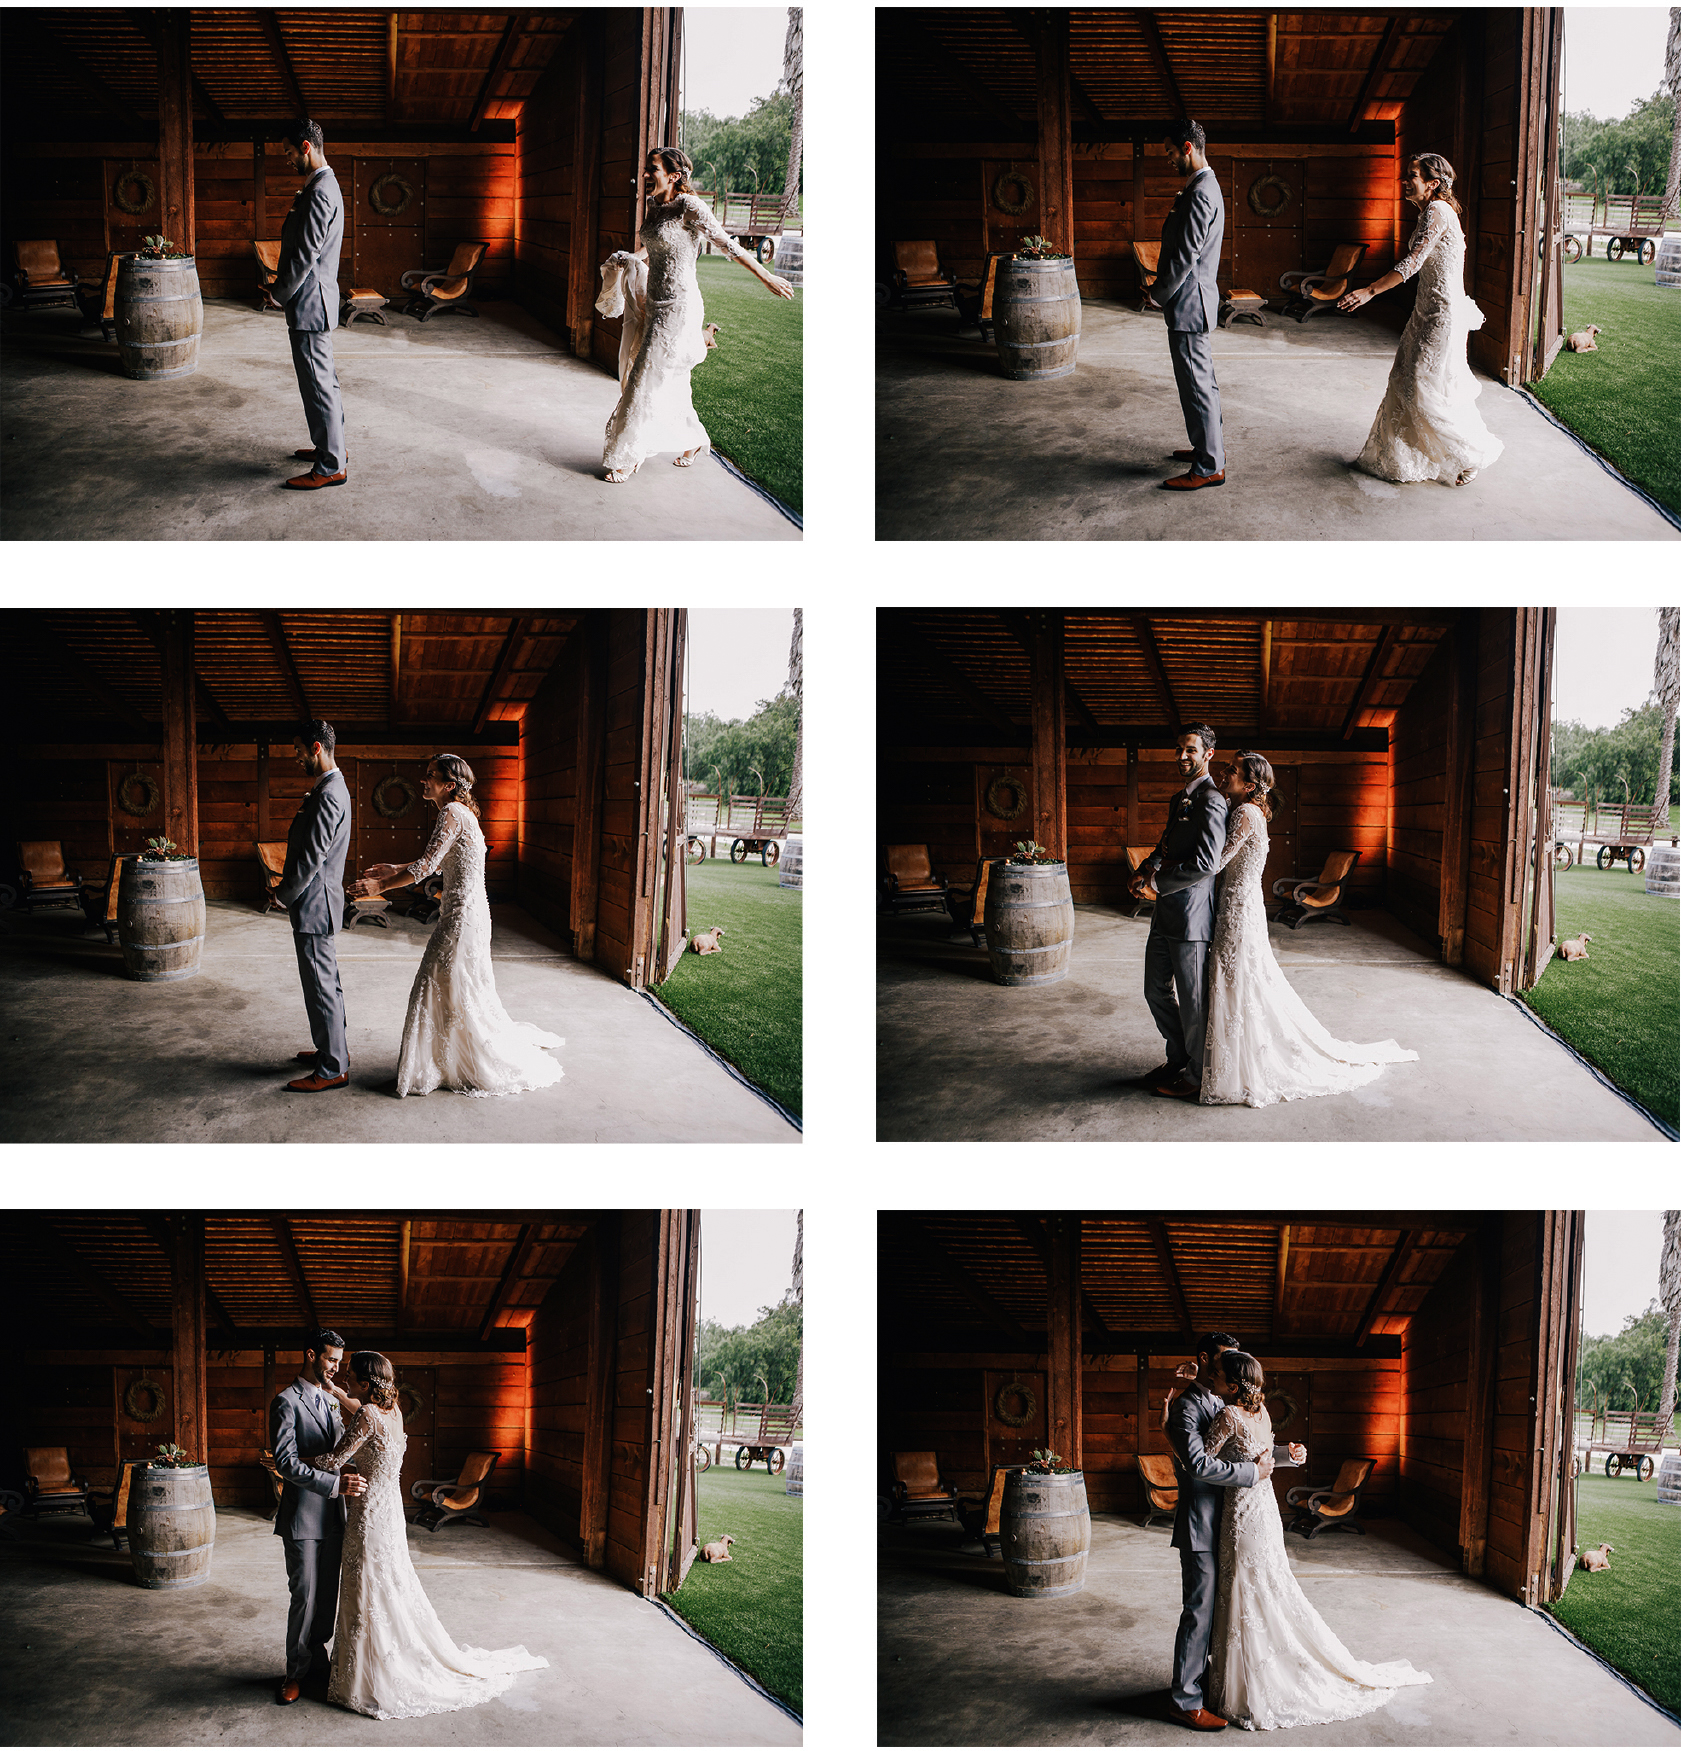 san diego wedding   photographer | collage of bride and groom in barn with bride surprising groom   from behind